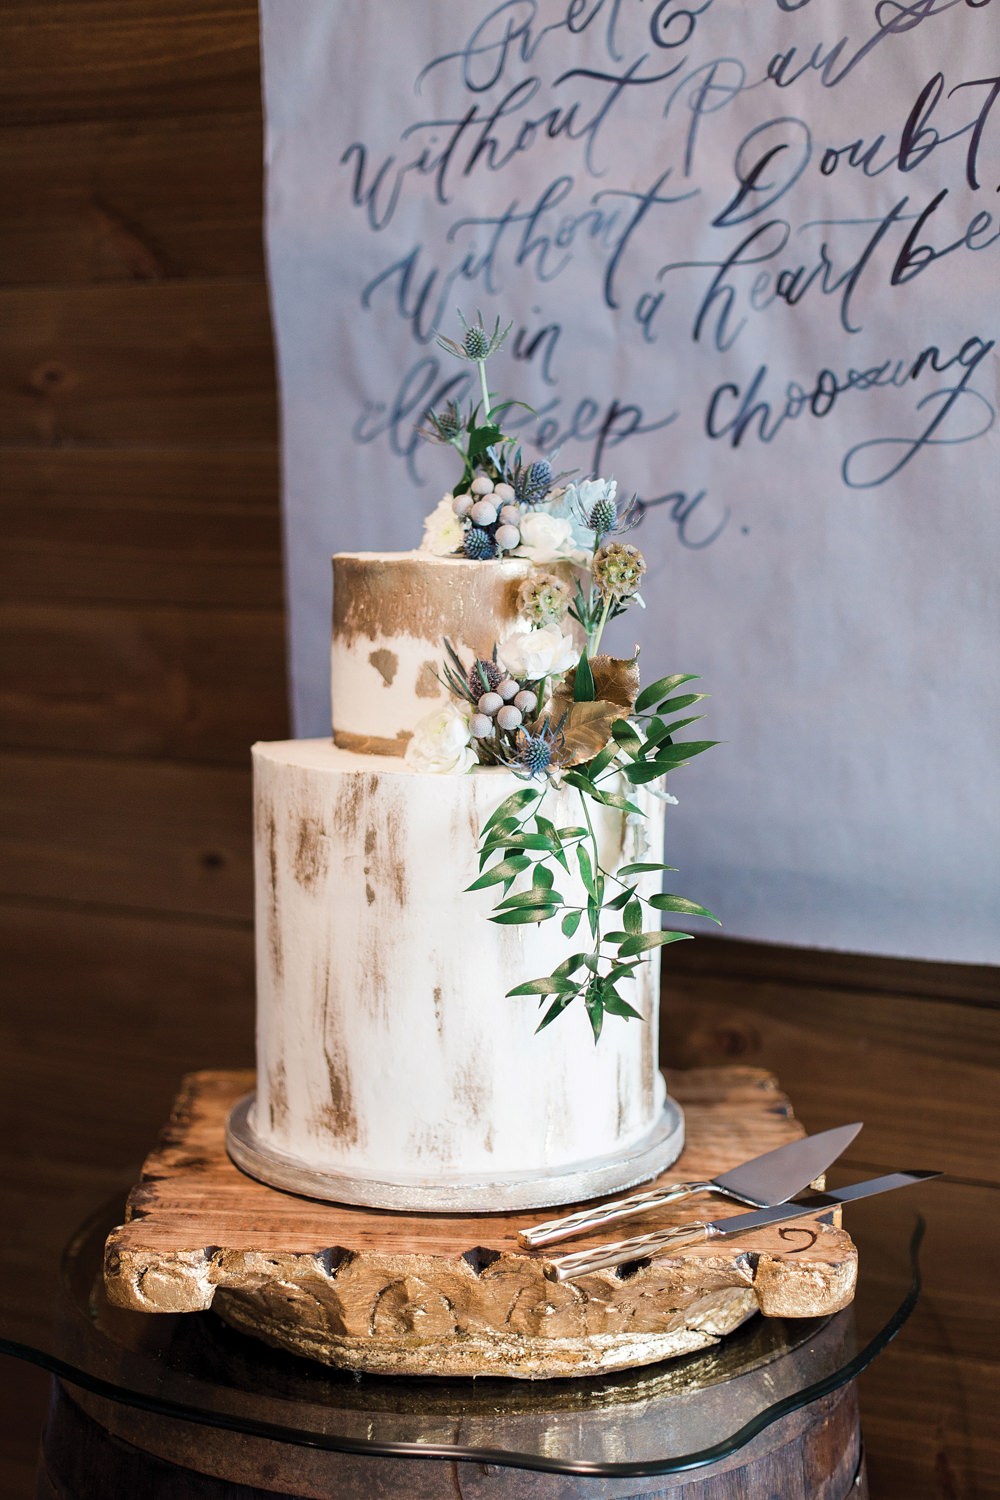 Two tiered white and gold wedding cake with blue thistle on top.